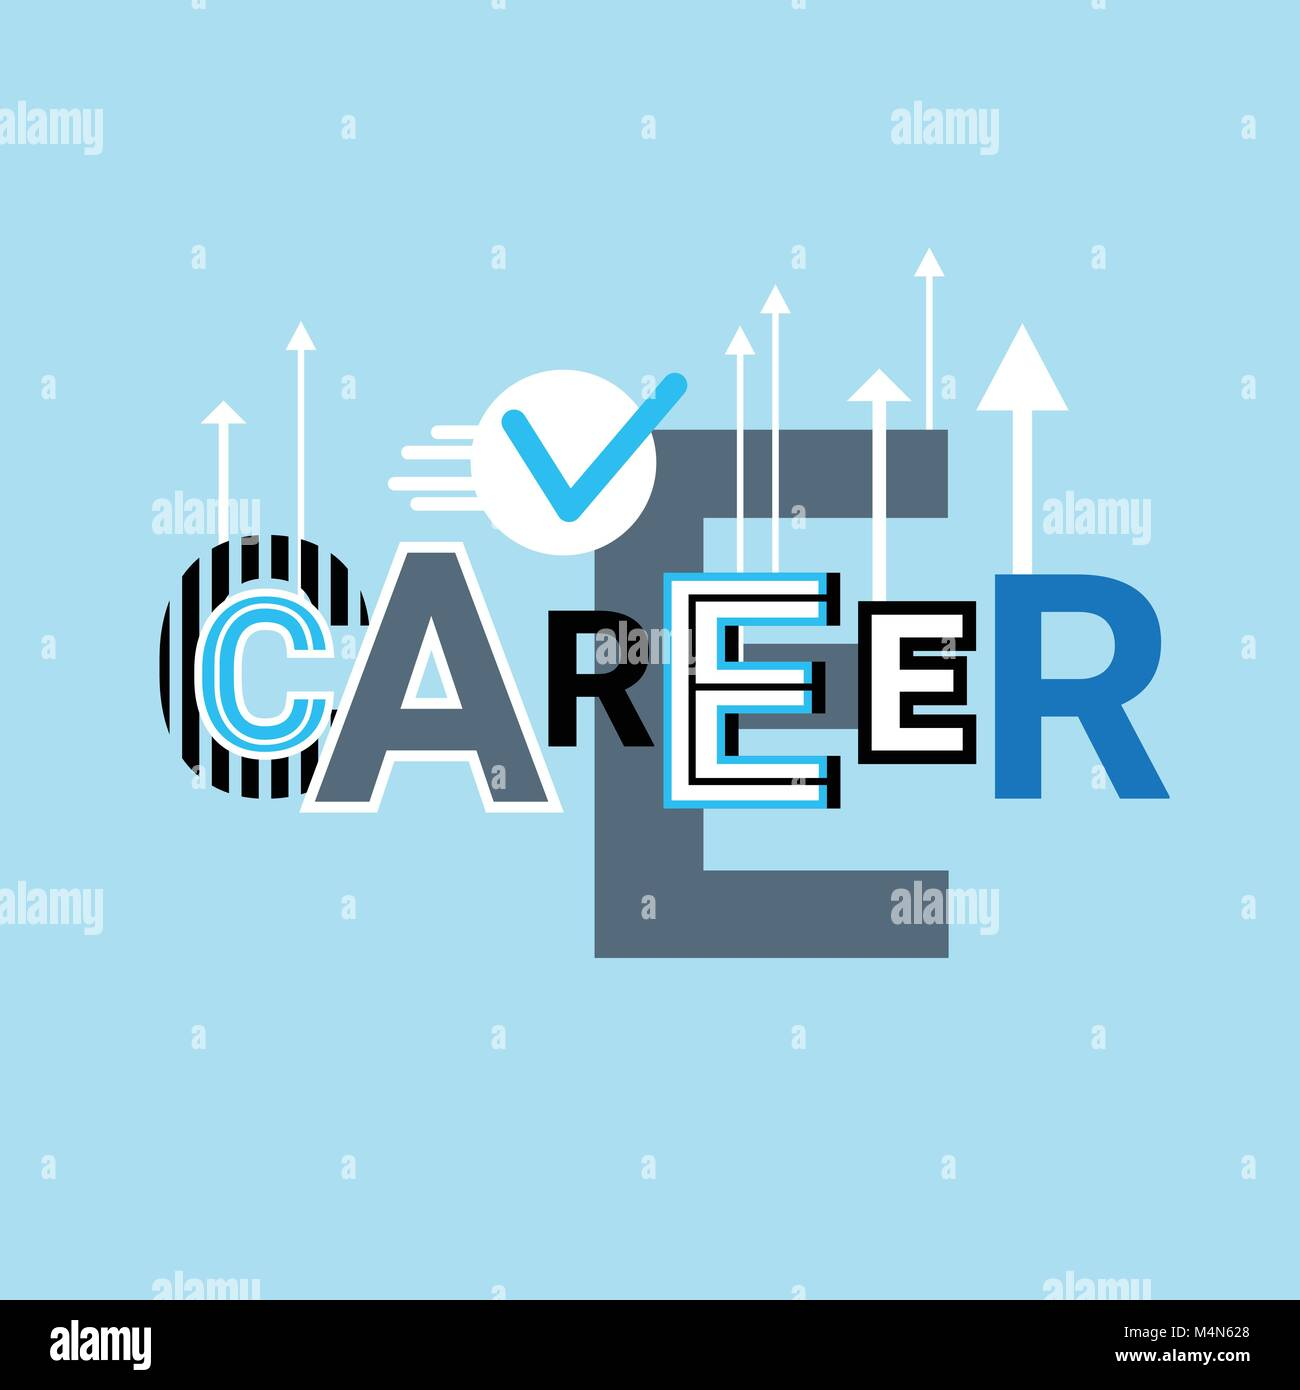 Career Growth Business Creative Word Over Abstract Geometric Shapes Stock Vector Image Art Alamy